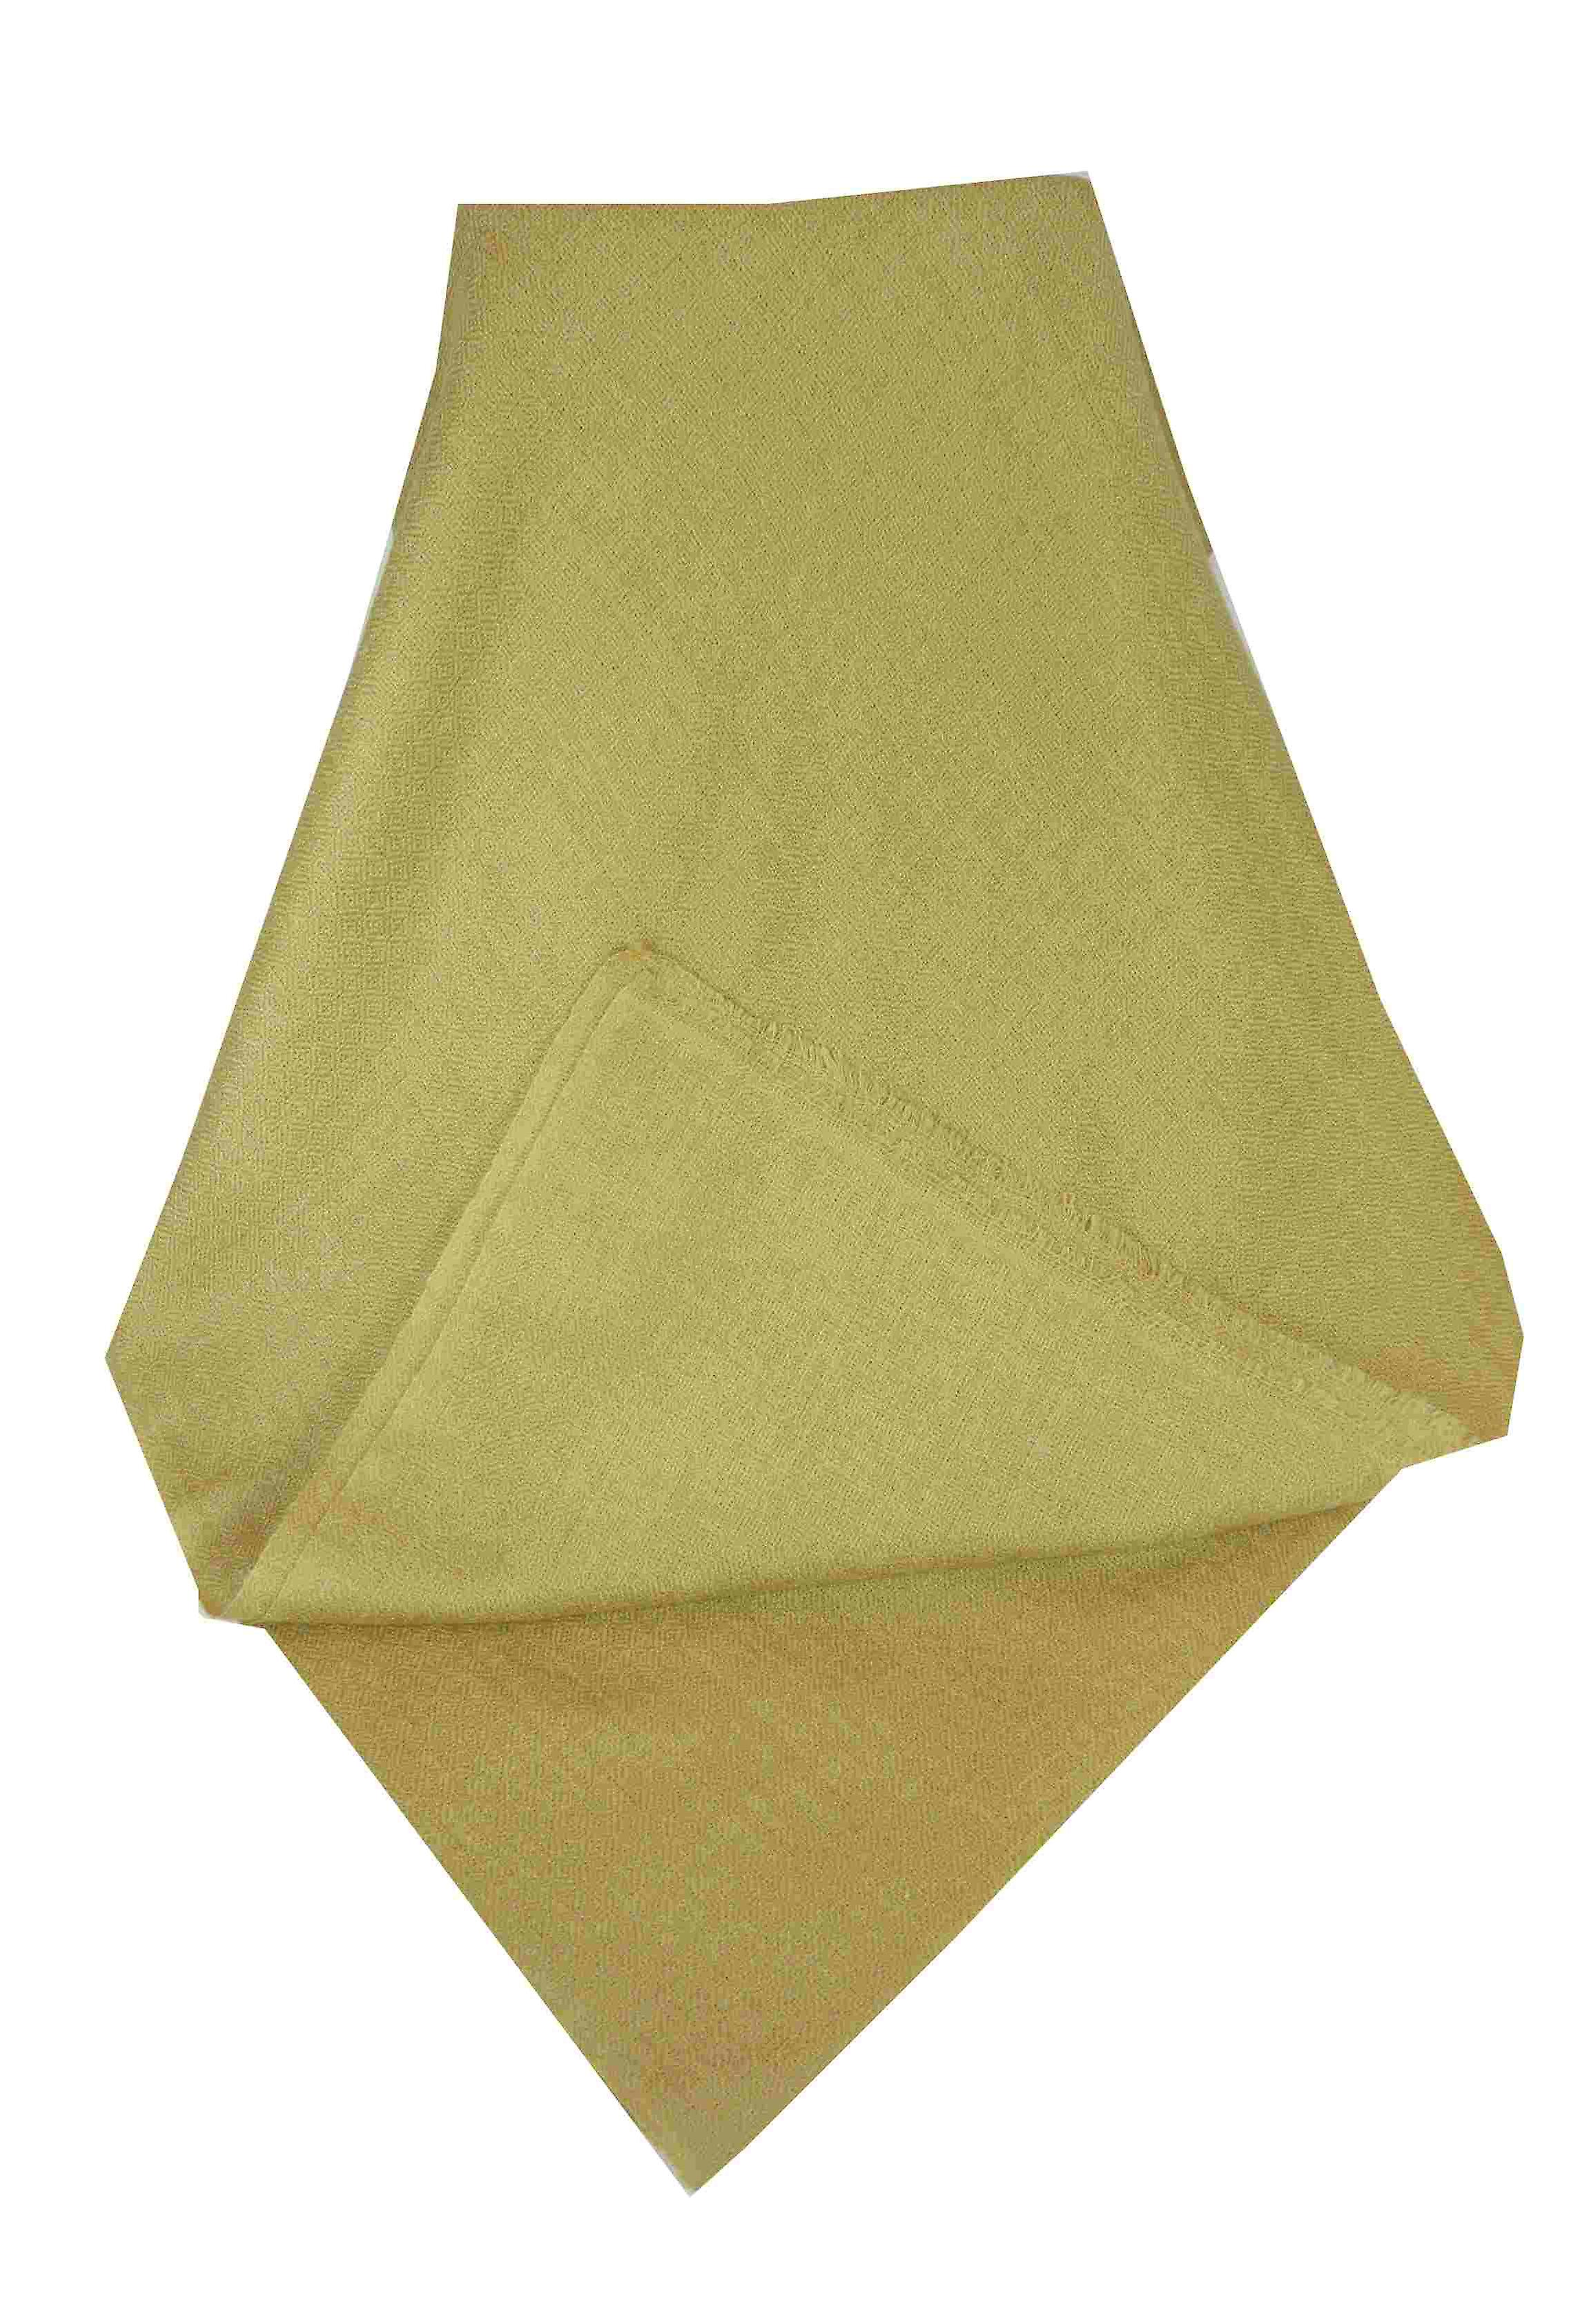 MENS Fine Cashmere Scarf Old Gold by Pashmina & Silk